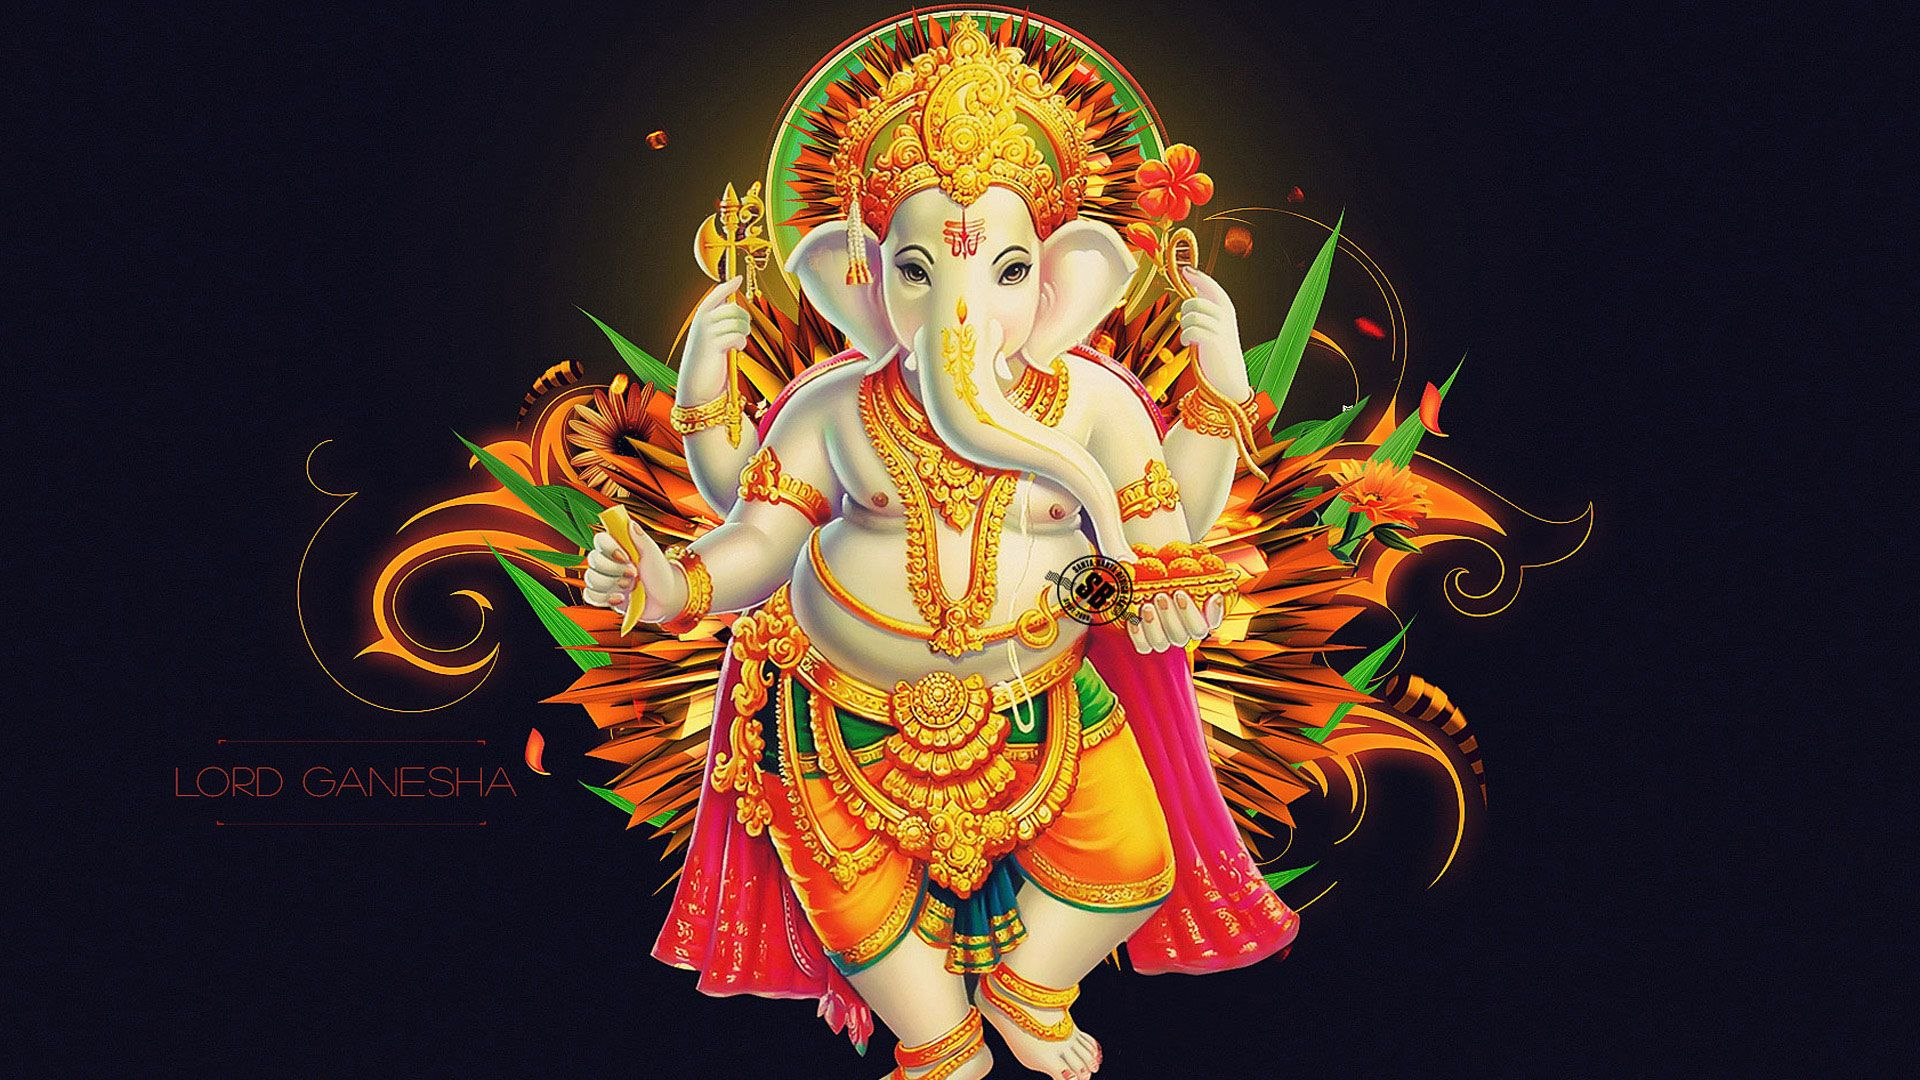 Hd Pics Photos Gods Cute Ganesh Chaturthi Desktop Background Wallpaper Ganesha Hanuman Wallpaper Ganesha Pictures